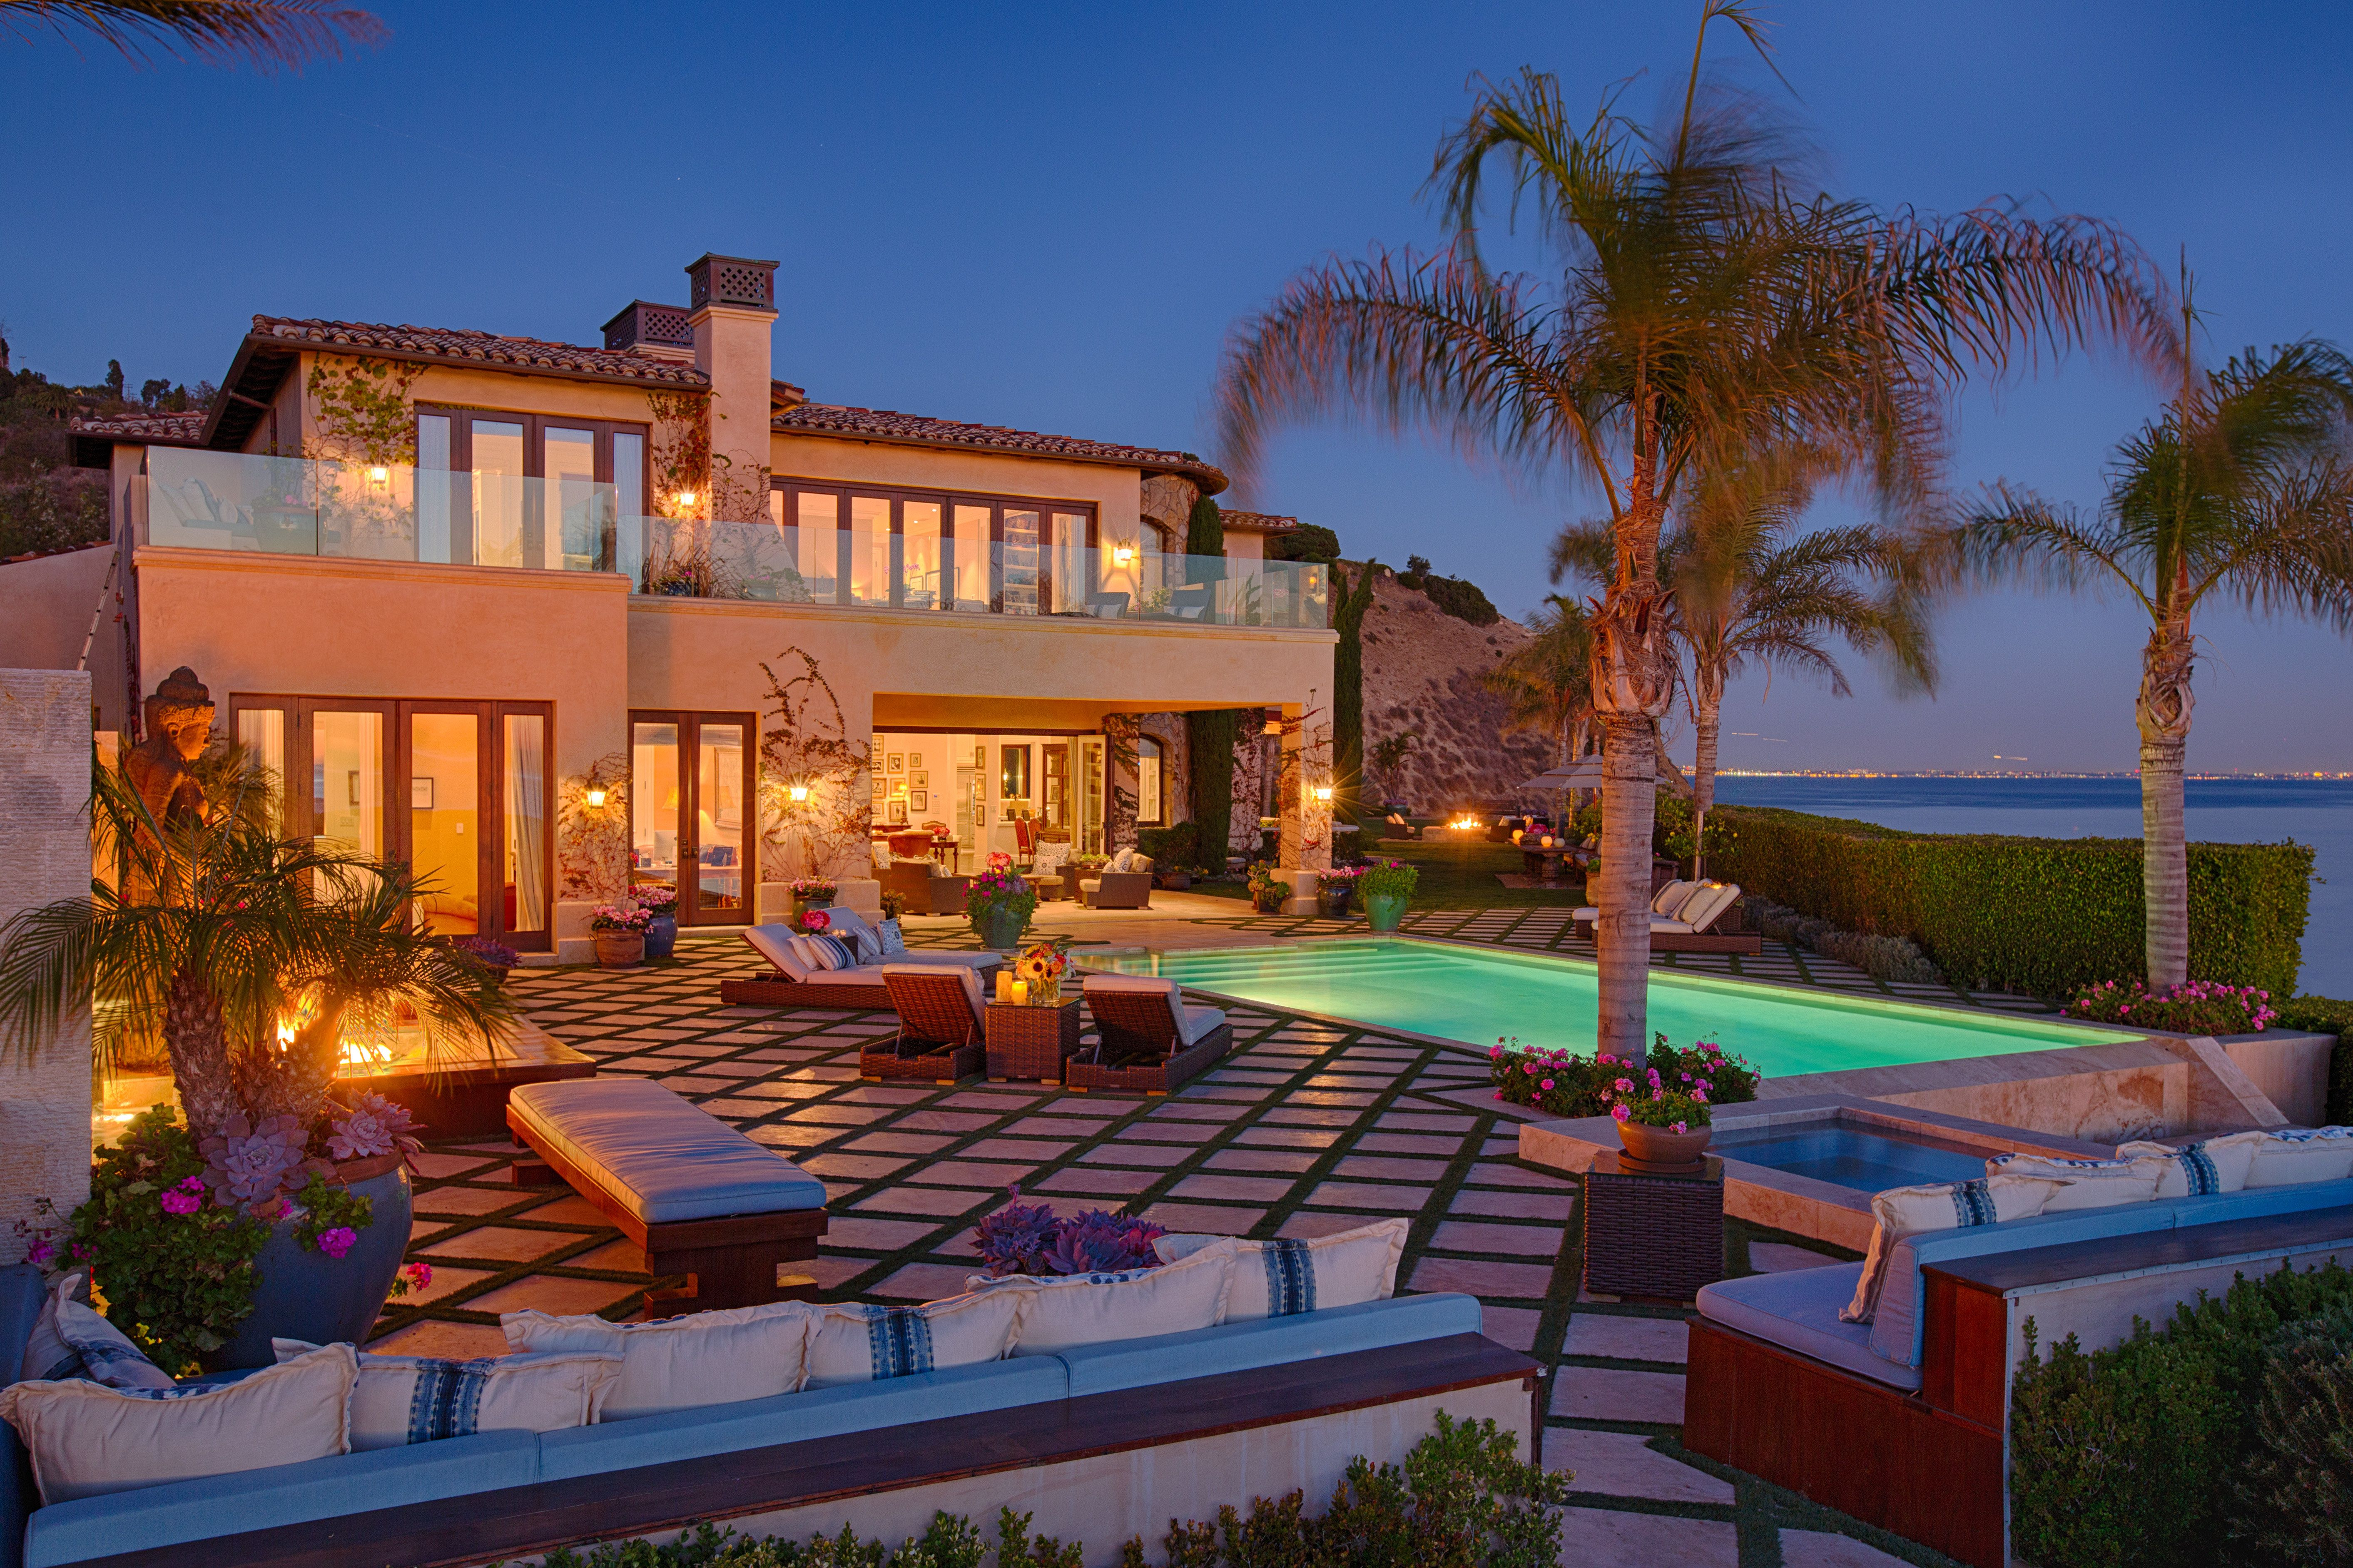 Malibu Home Of The Real Housewives Of Beverly Hills Yolanda And David Foster Sells For 19 Million Malibu Mansion Malibu Homes Mansions